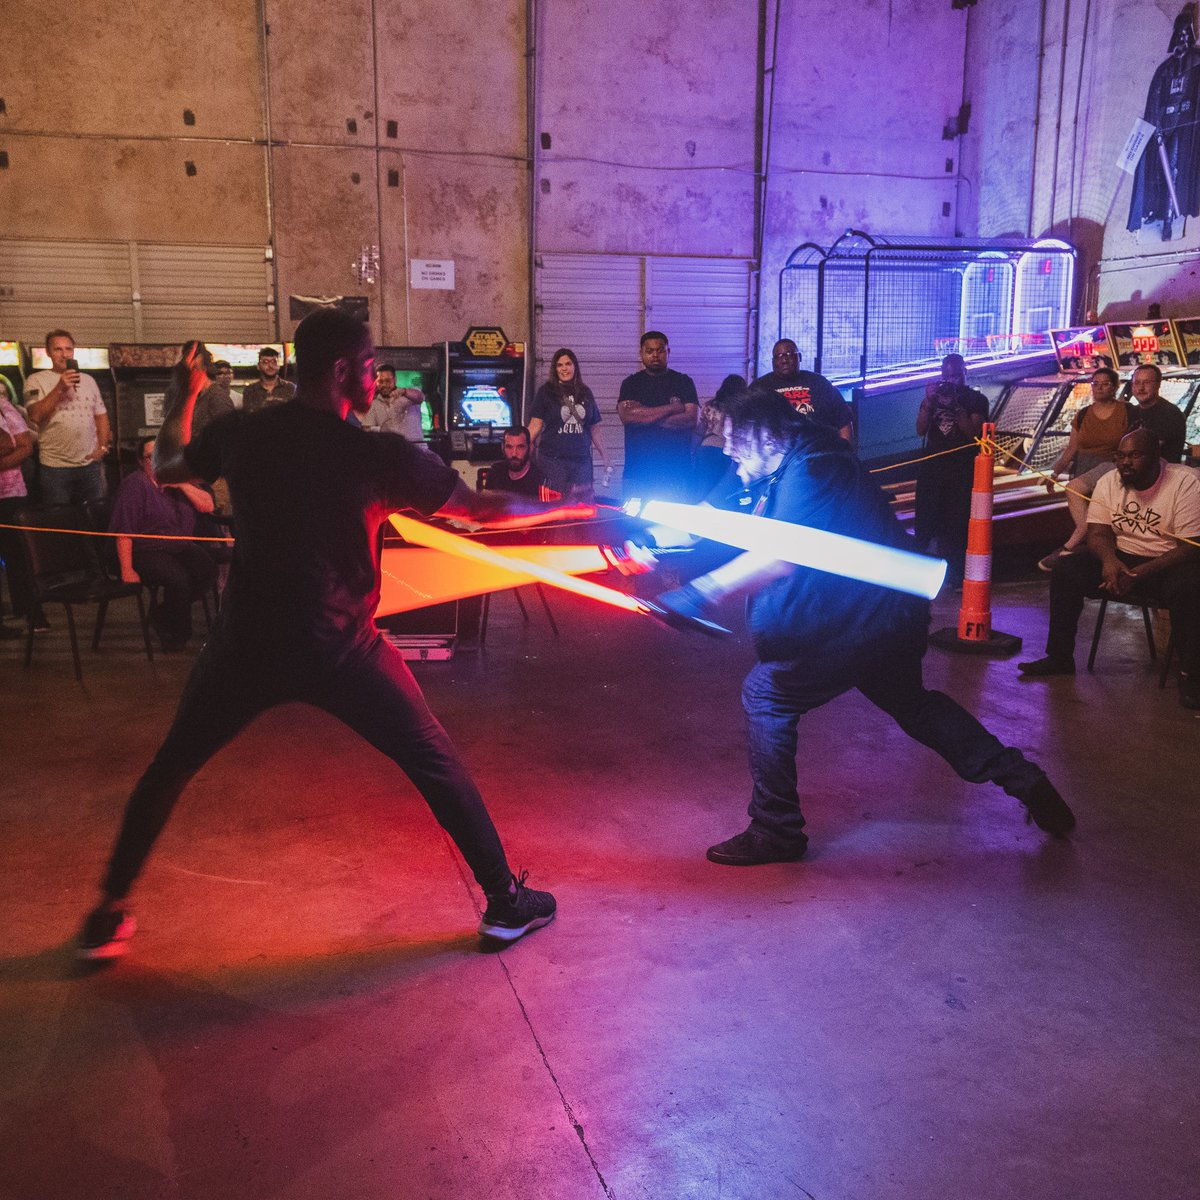 Bring the whole crew by for Kid's Hour today at noon! We'll have kiddo Lightsaber Battles > Pizza > Mocktails > Free Play Video Games > Music + More! #kidshour #ilovememphis #choose901 https://t.co/mo71MWJM7m